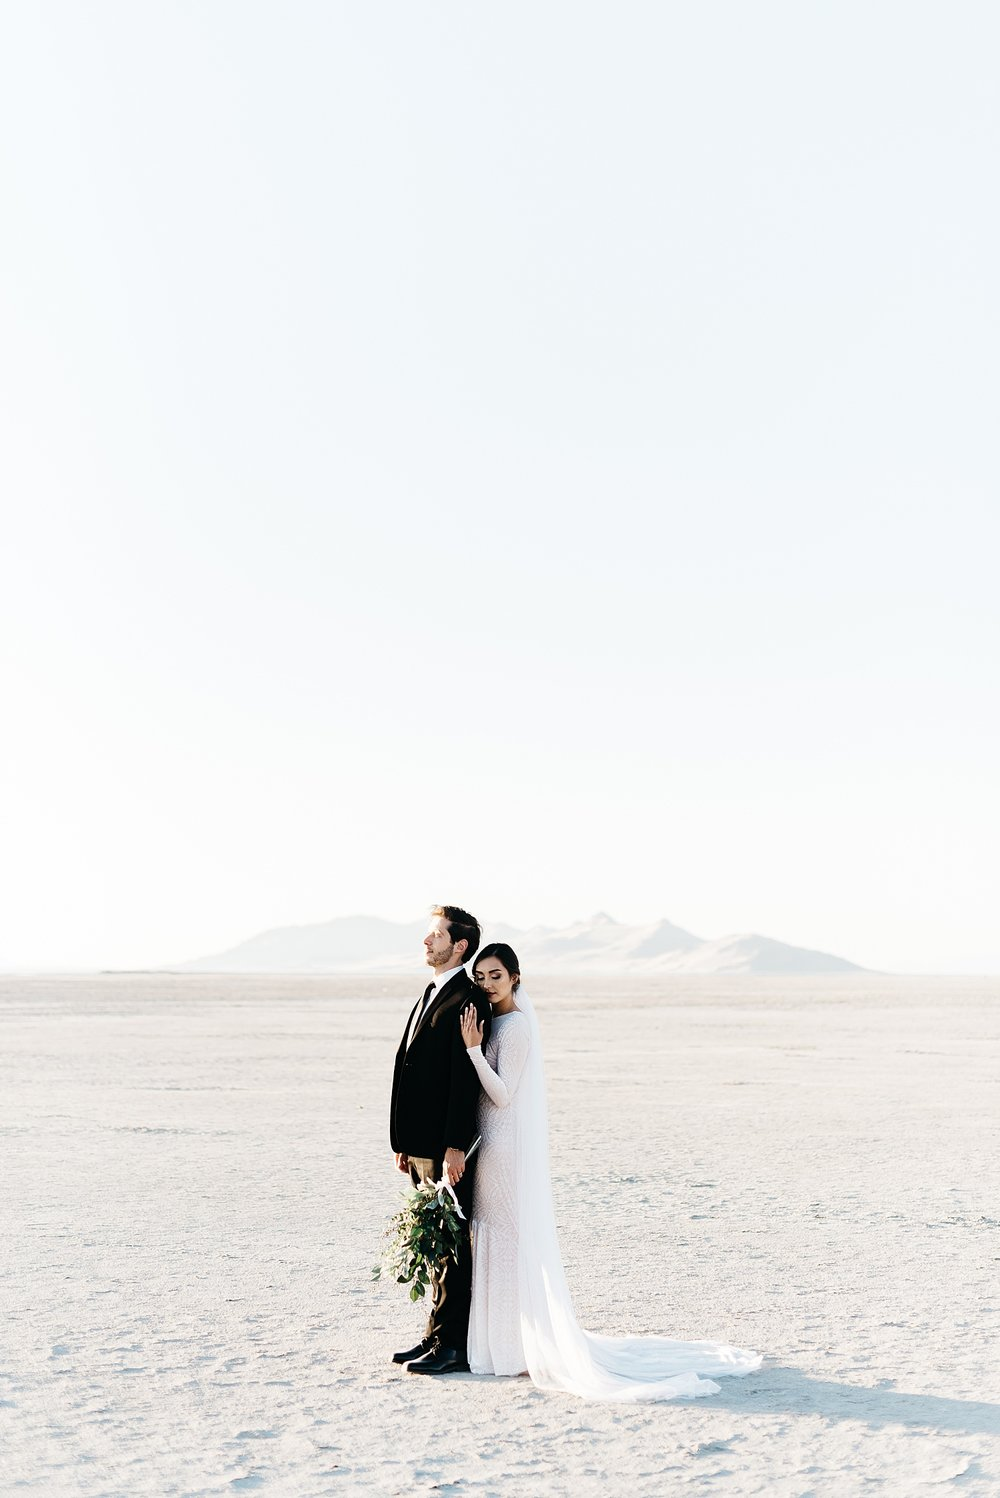 Zandra Barriga Photo - Cassie and Tristan Great Salt Lake Bridas_0004.jpg